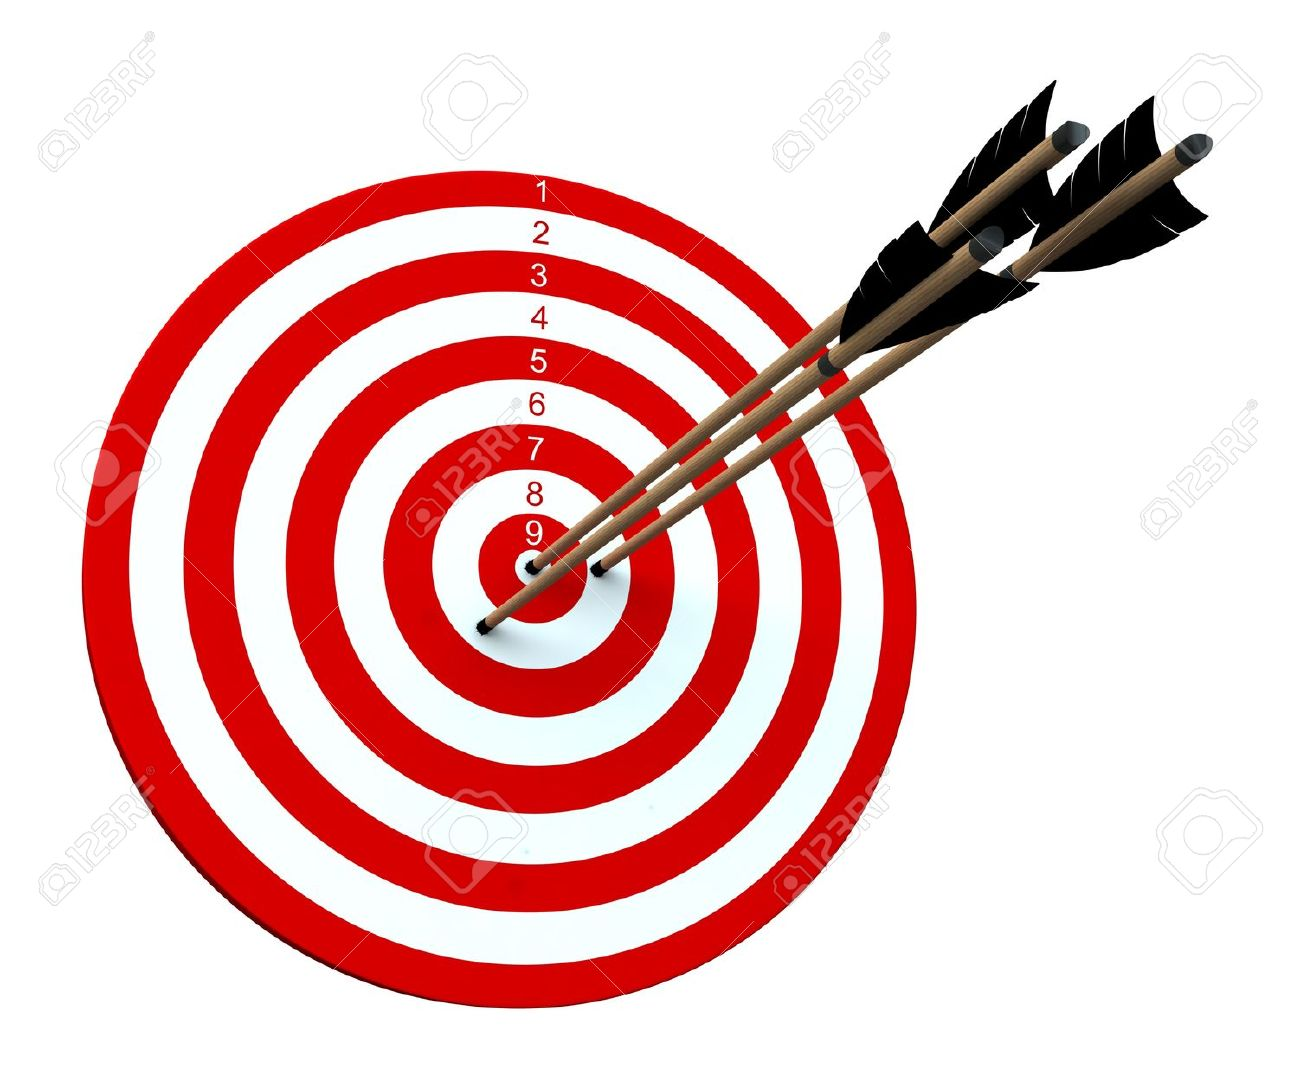 Arrow hitting target clipart royalty free download Target with arrow clipart - ClipartFest royalty free download